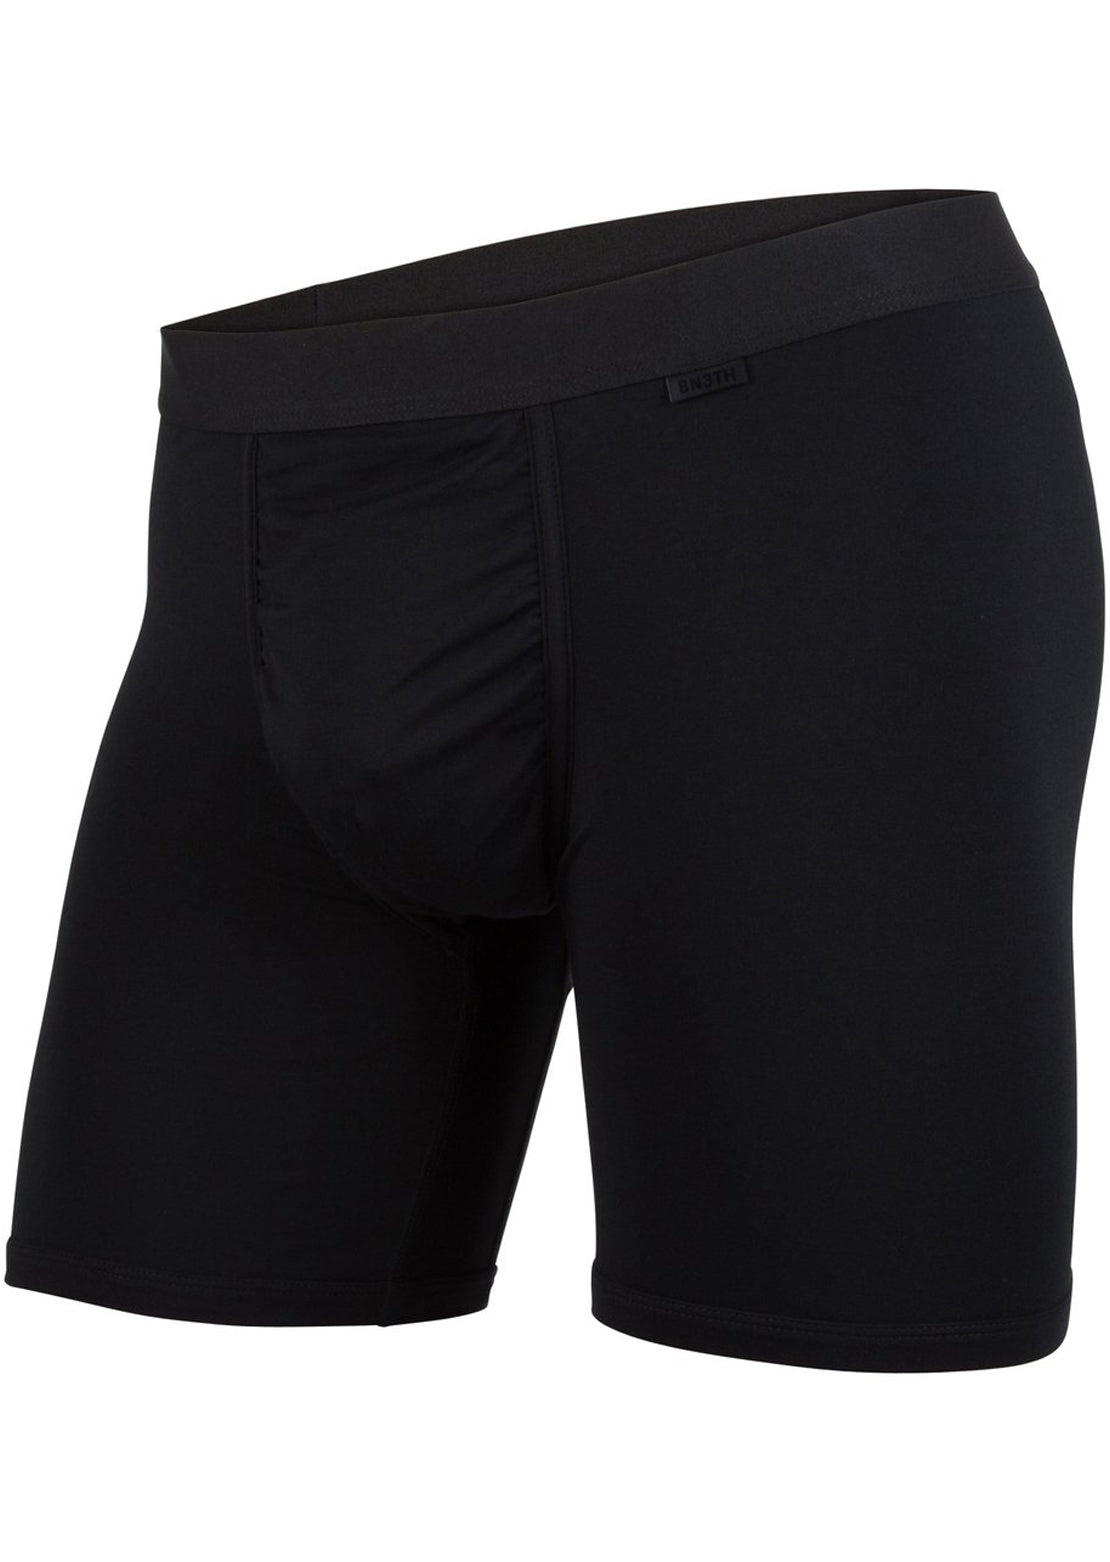 BN3TH Men's Modal Solid Brief Boxer Black/Black